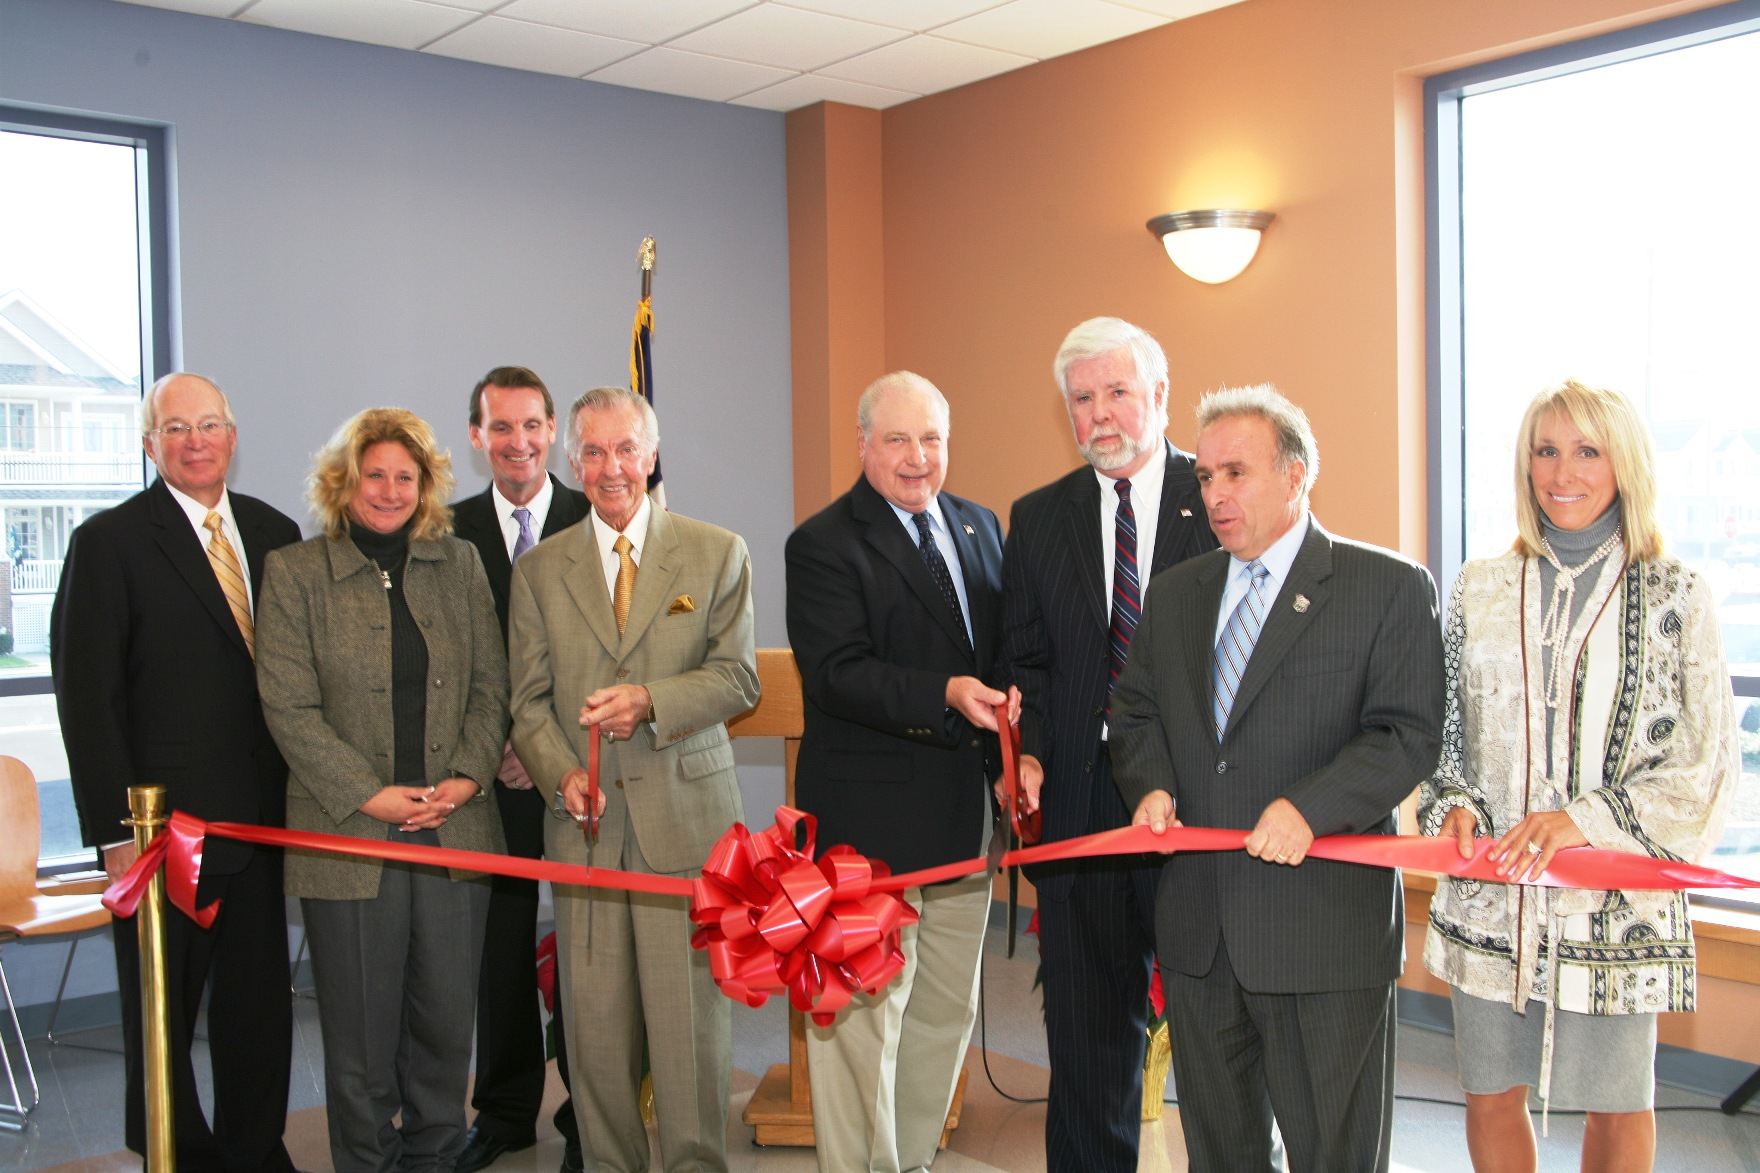 Men and women cutting ribbon at Ocean City Stainton Senior Center